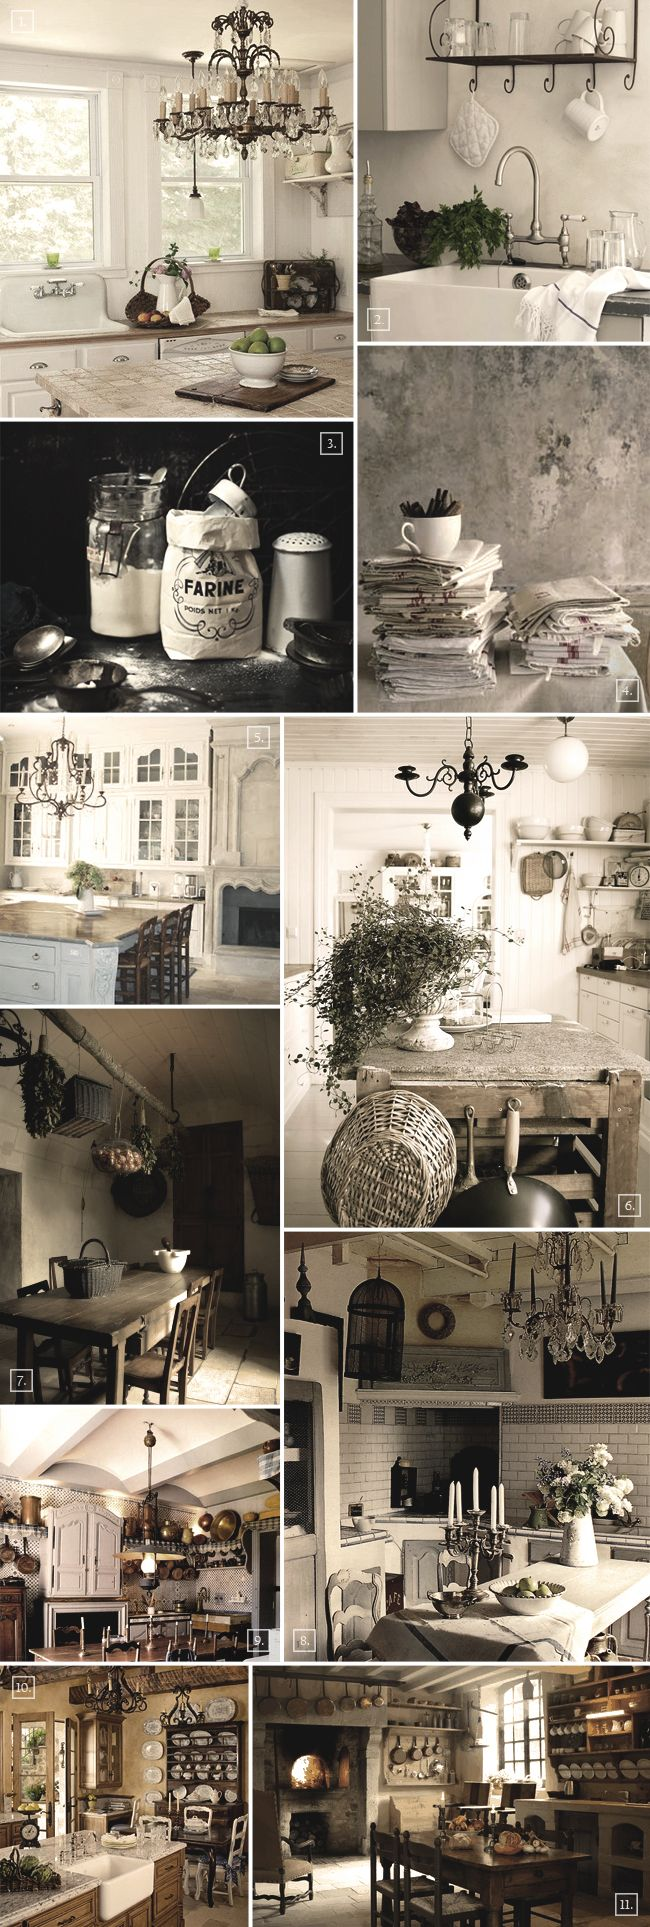 French Kitchen Decor Ideas. The French Country Style Is Quite Fashionably  Rustic. Youu0027